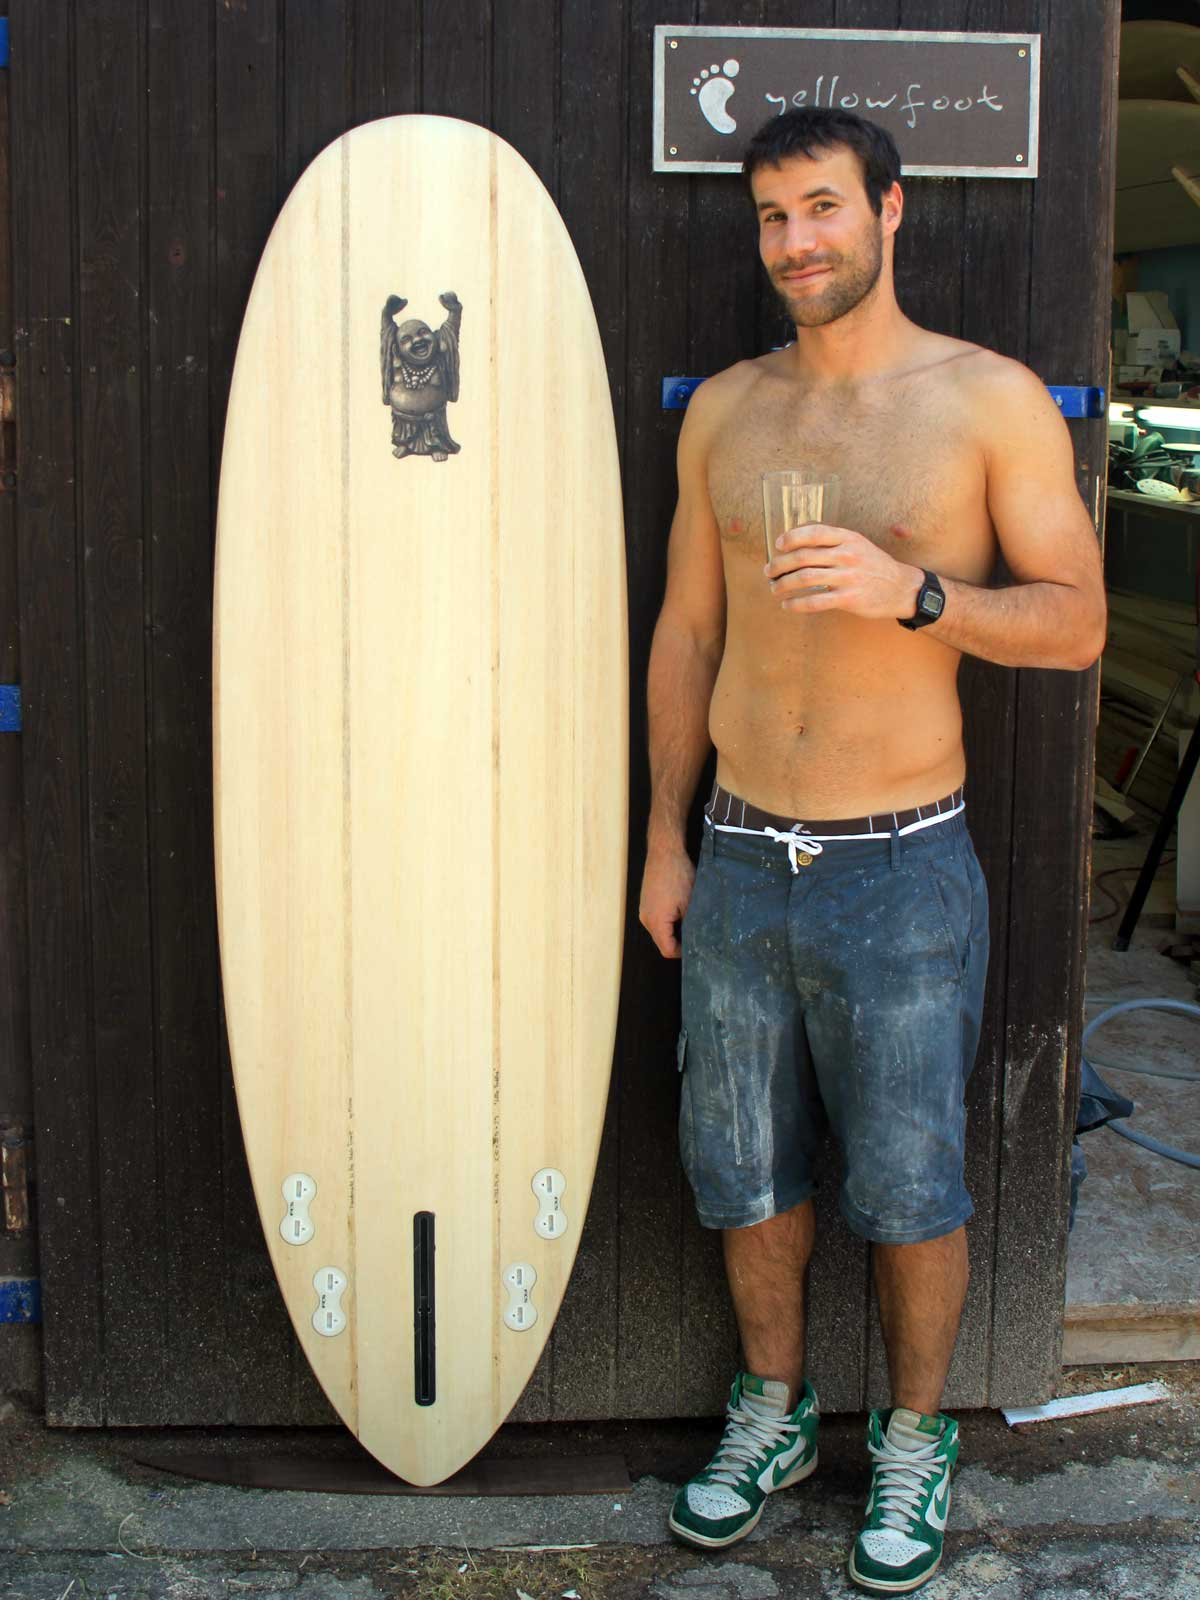 balsa-surfboards-workshop